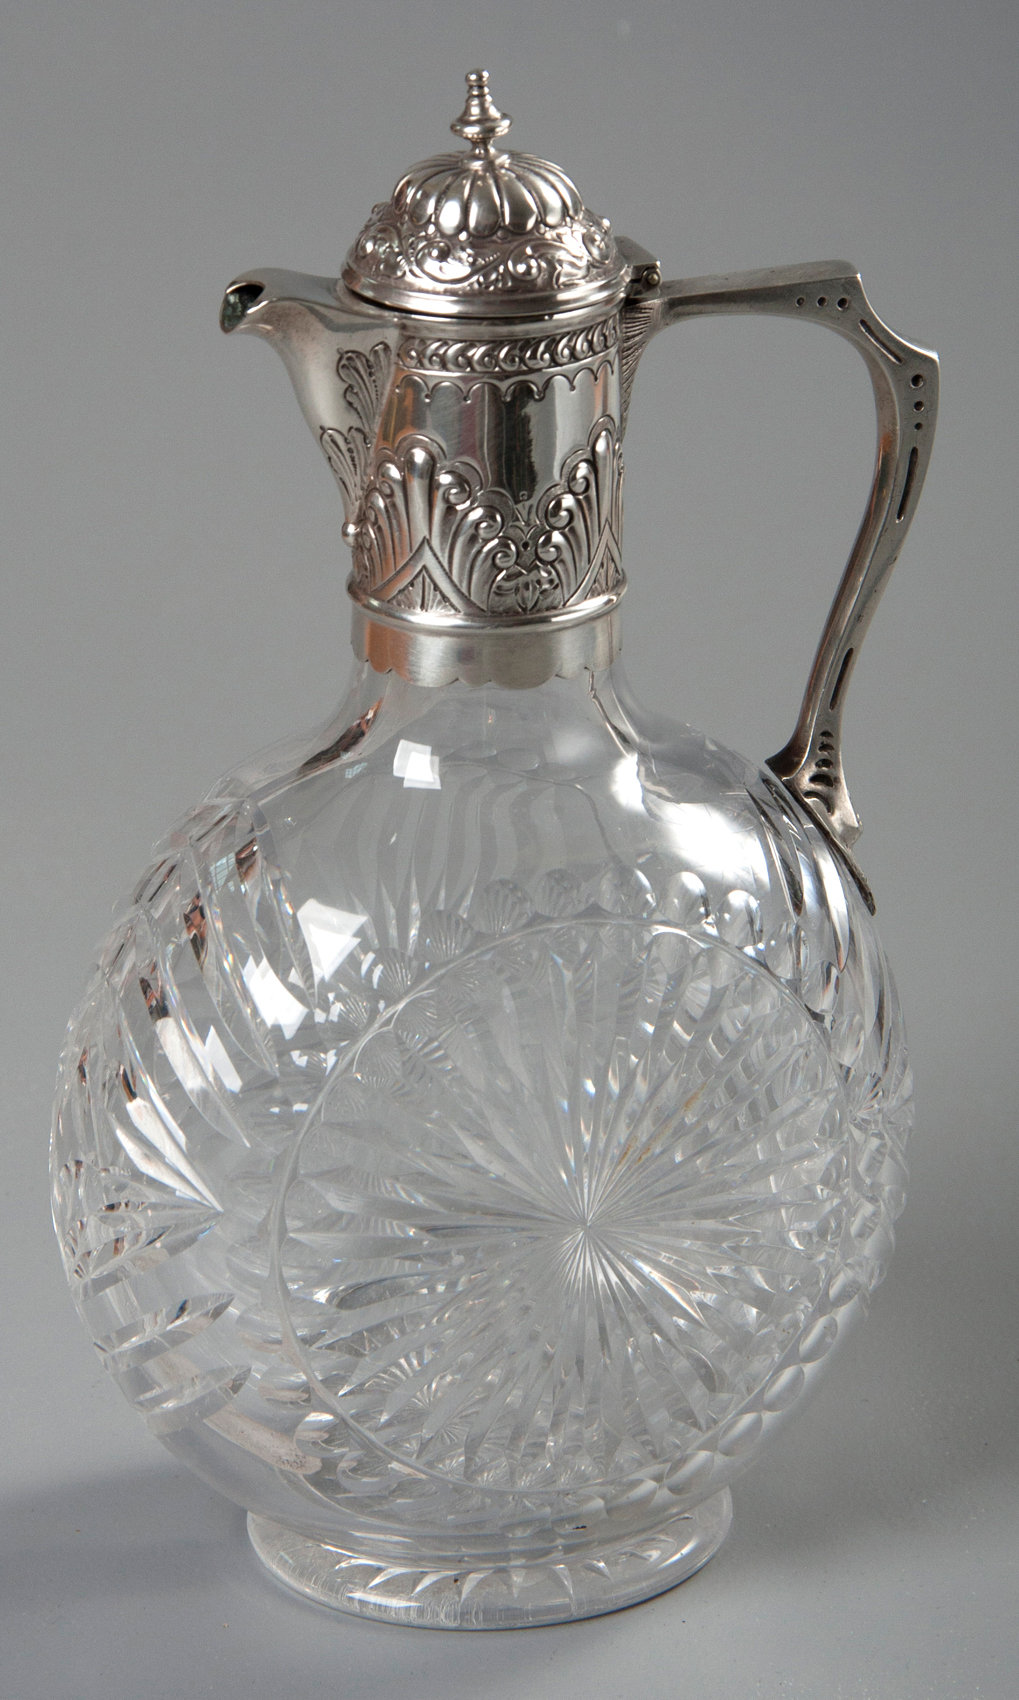 Lot 25 – A VICTORIAN SILVER MOUNTED AND CUTGLASS CLARET JUG, LONDON 1887